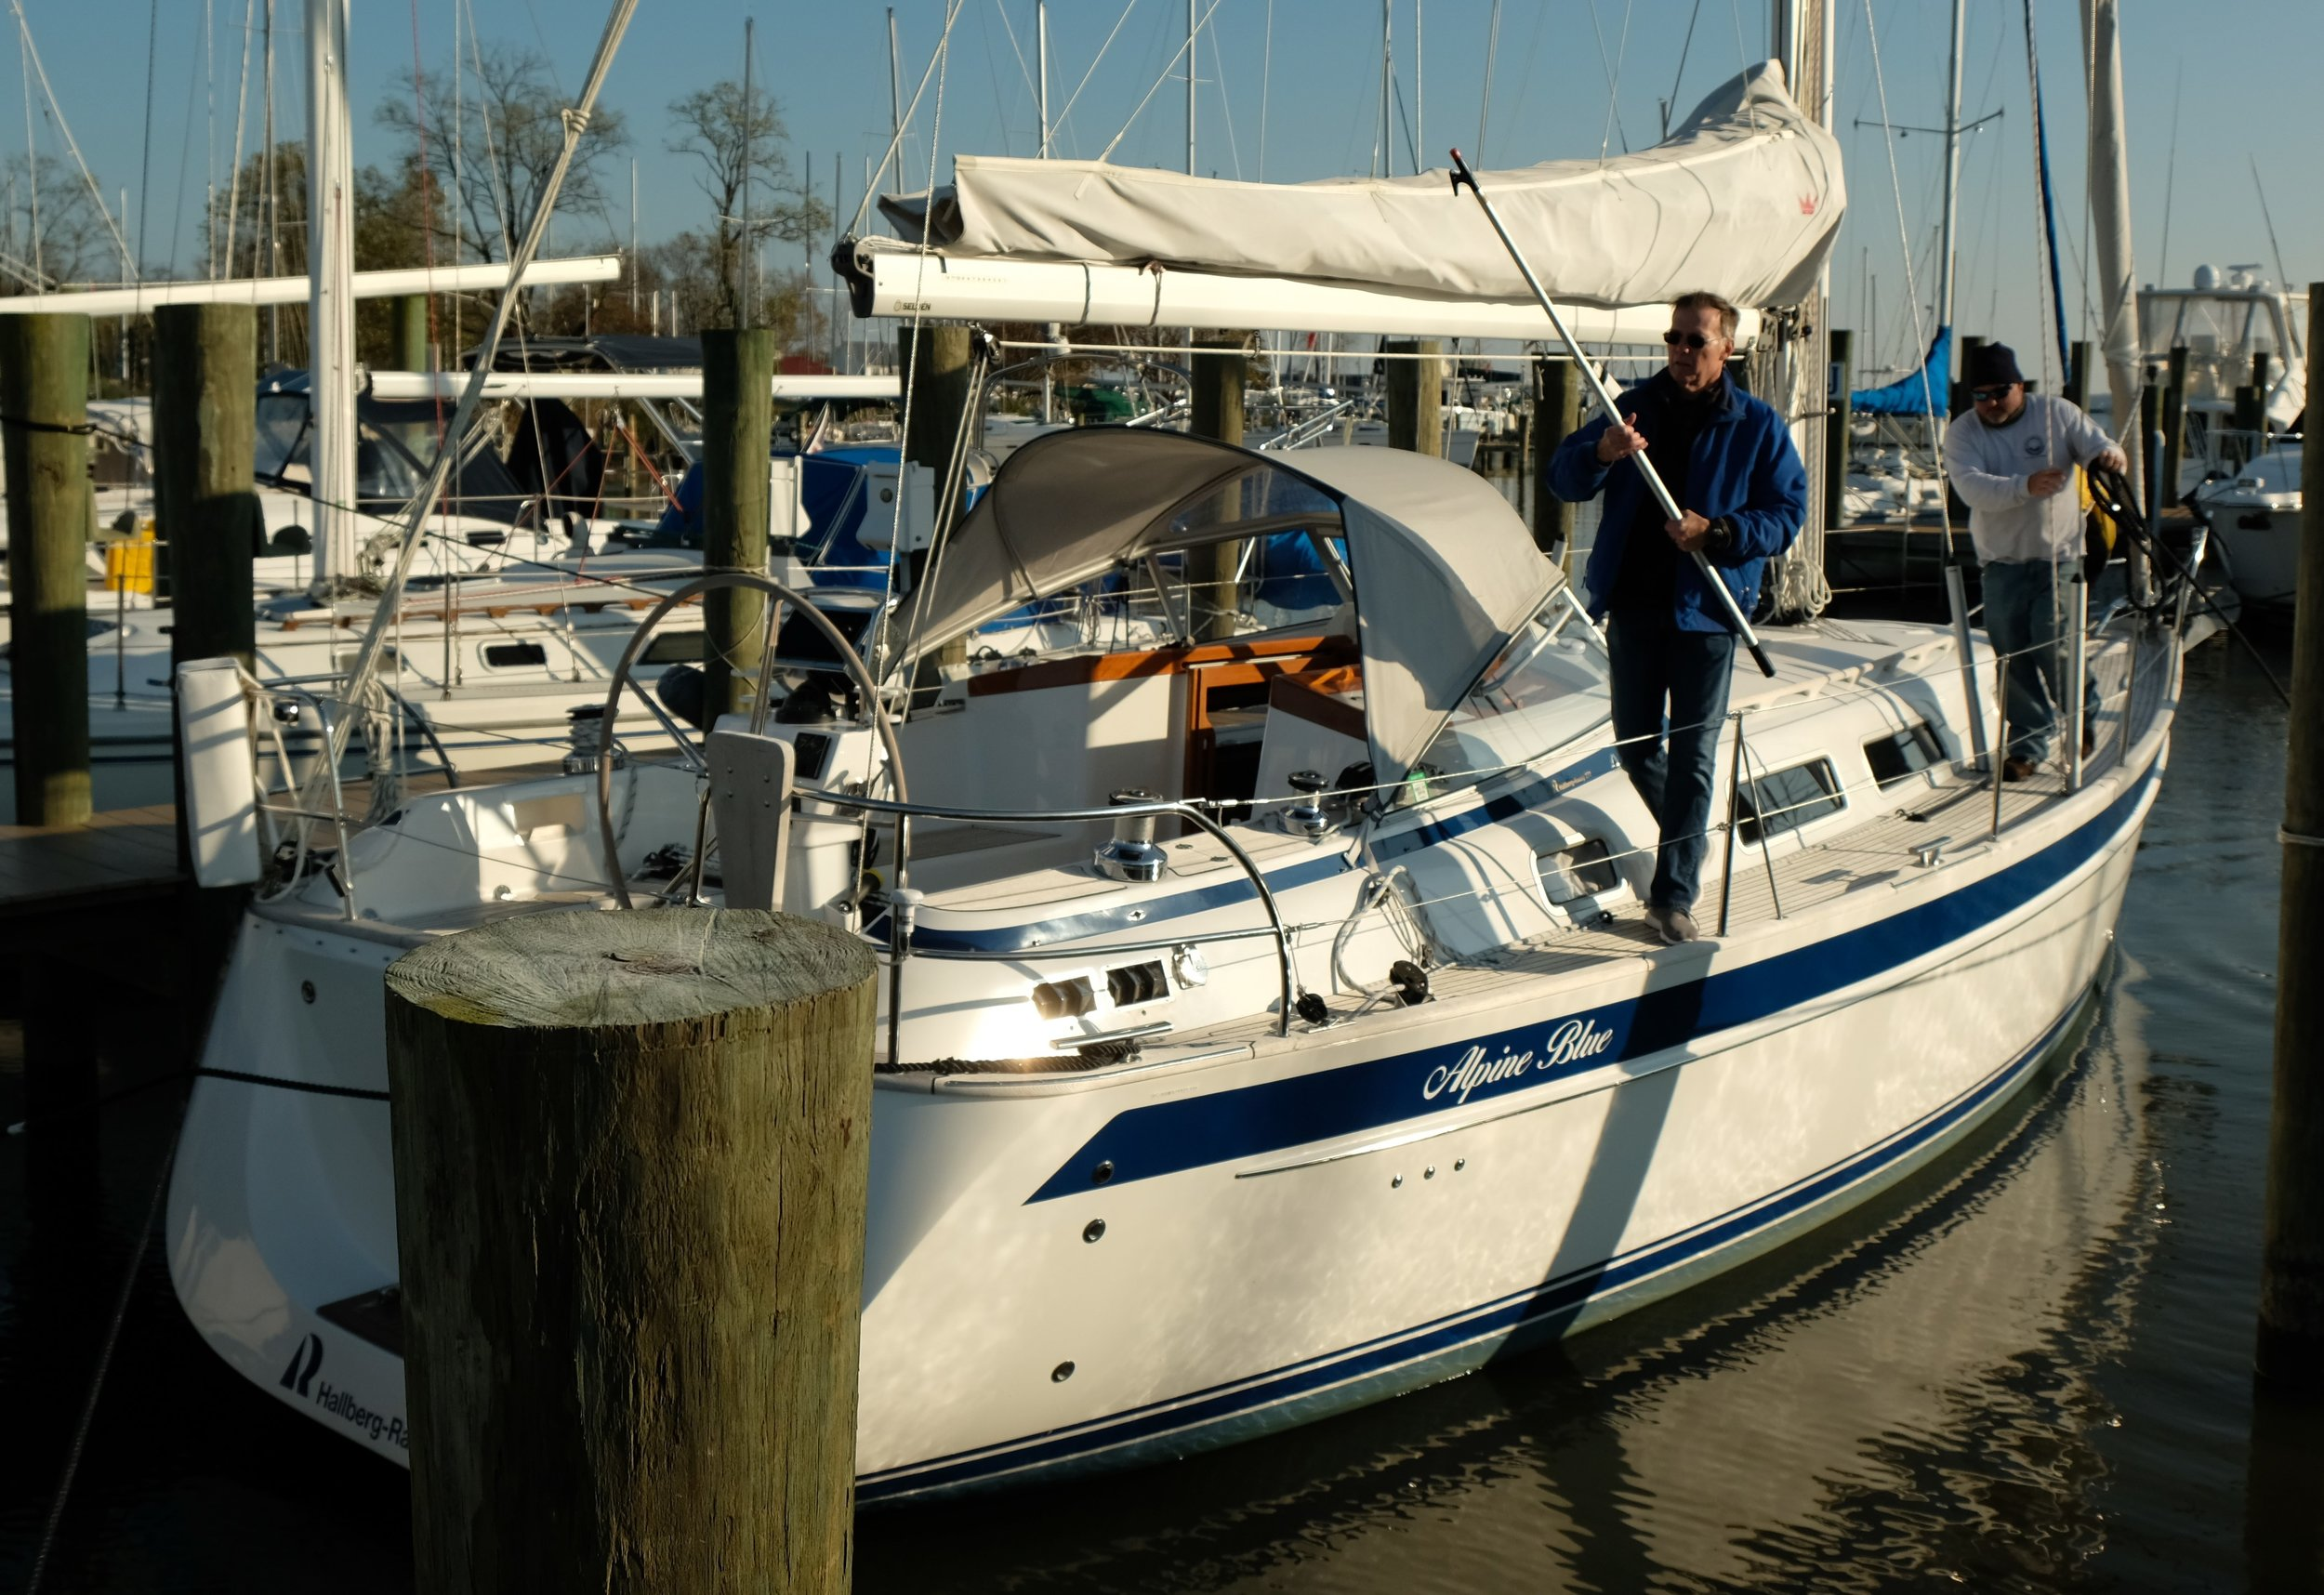 We got into a slip on K Dock for a day or two before the Swedish Hallberg-Rassy 372 is hauled for the winter, near the offices of Free State Yachts, the HR dealer in this part of the world.